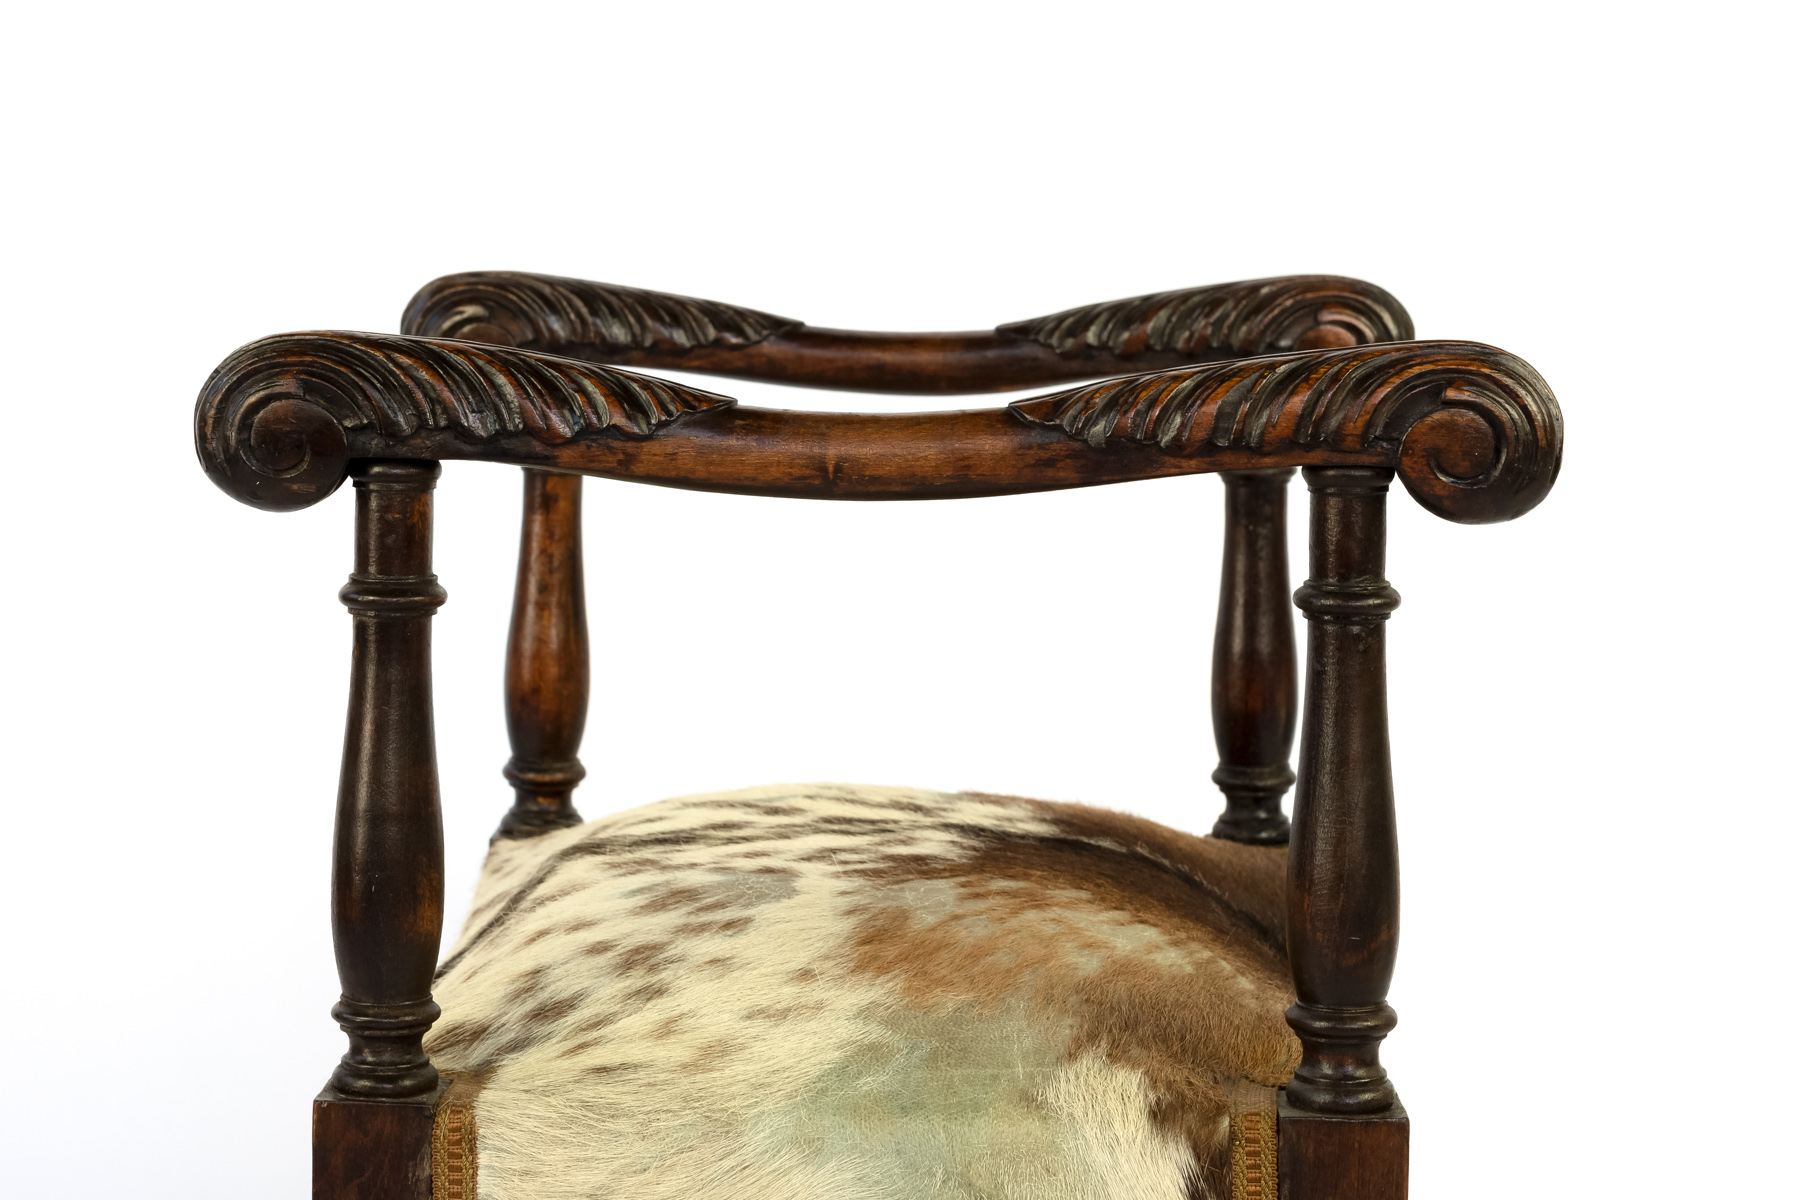 Sensational Unusual French 19Th Century Carved Oak Upholstered Stool With Elaborately Carved Arms Creativecarmelina Interior Chair Design Creativecarmelinacom